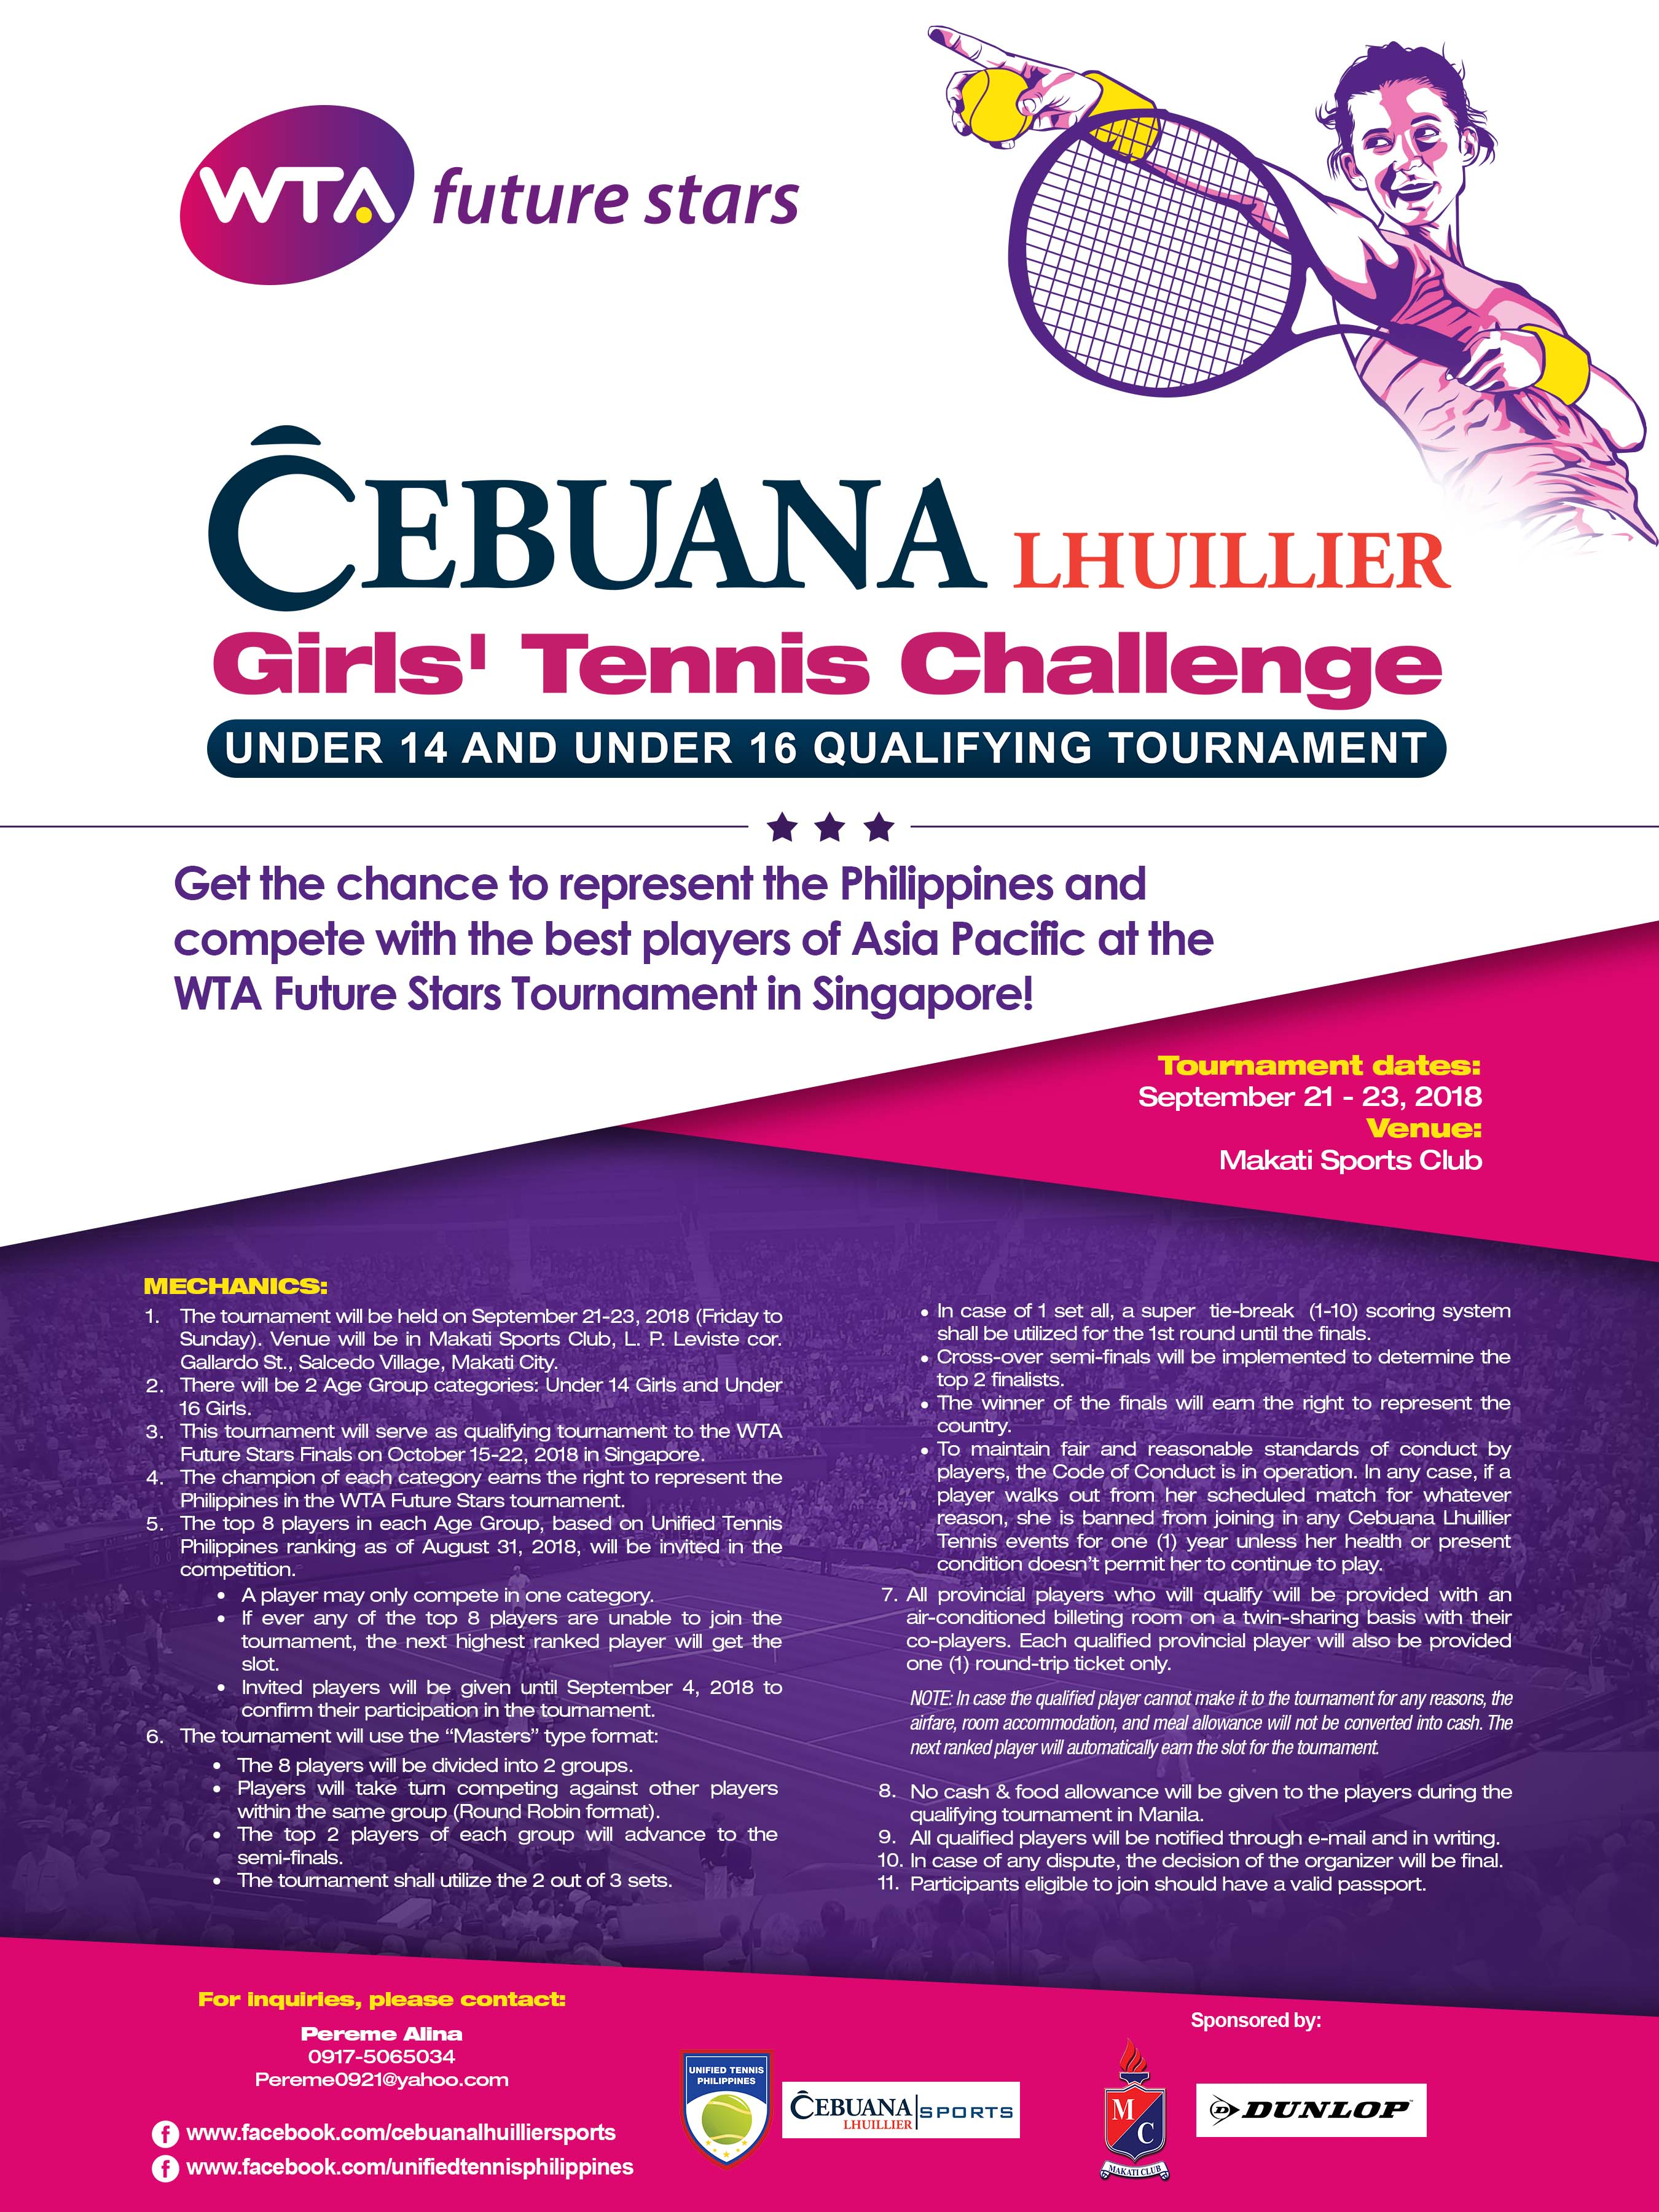 Cebuana Lhuillier Girls' Tennis Challenge Under 14 and Under 16 Qualifying Tournament